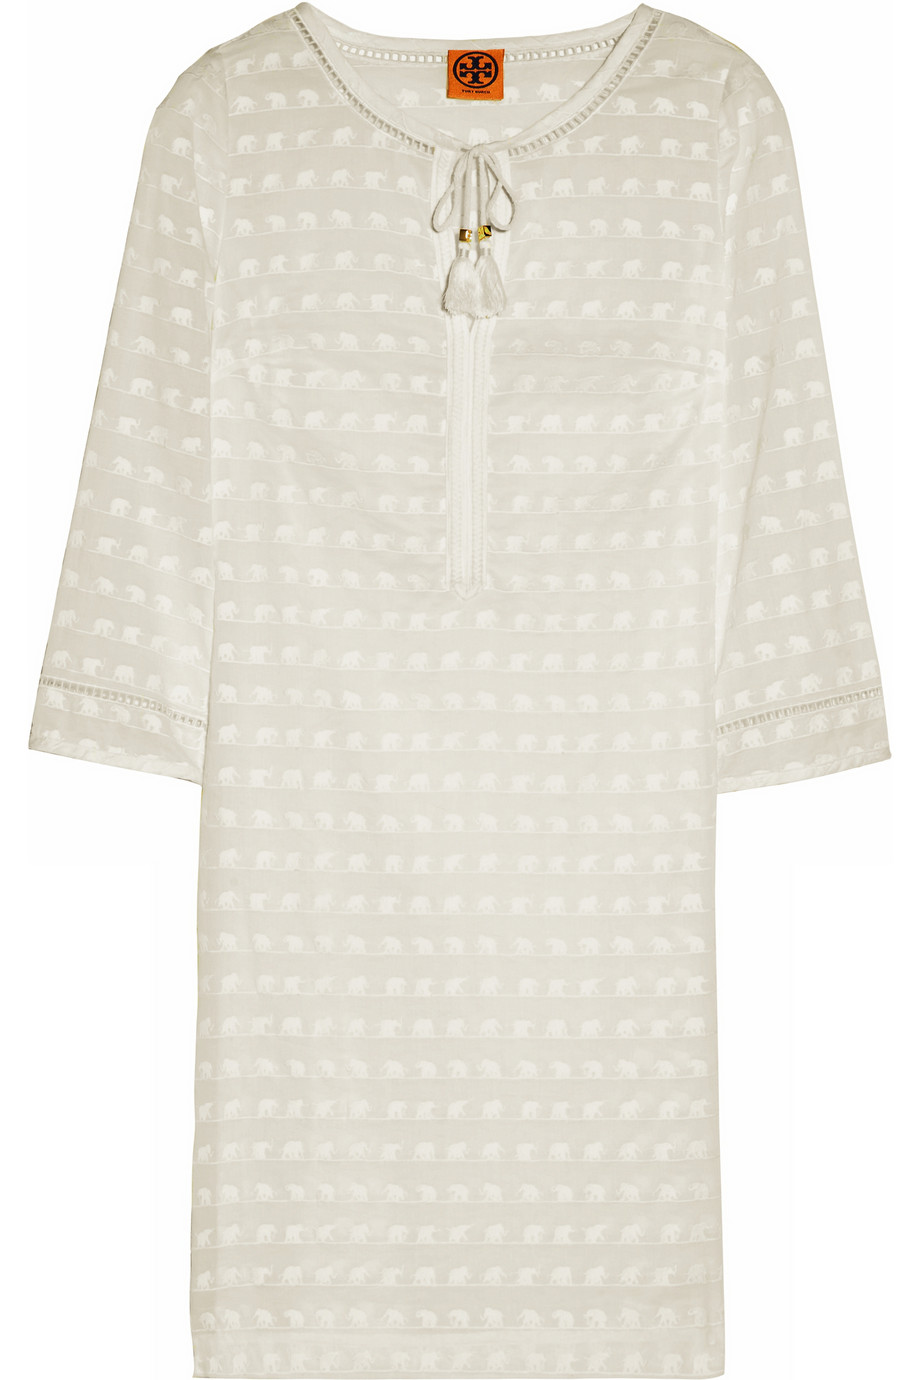 Tory Burch Ollie Elephant Embroidered Cotton Voile Dress